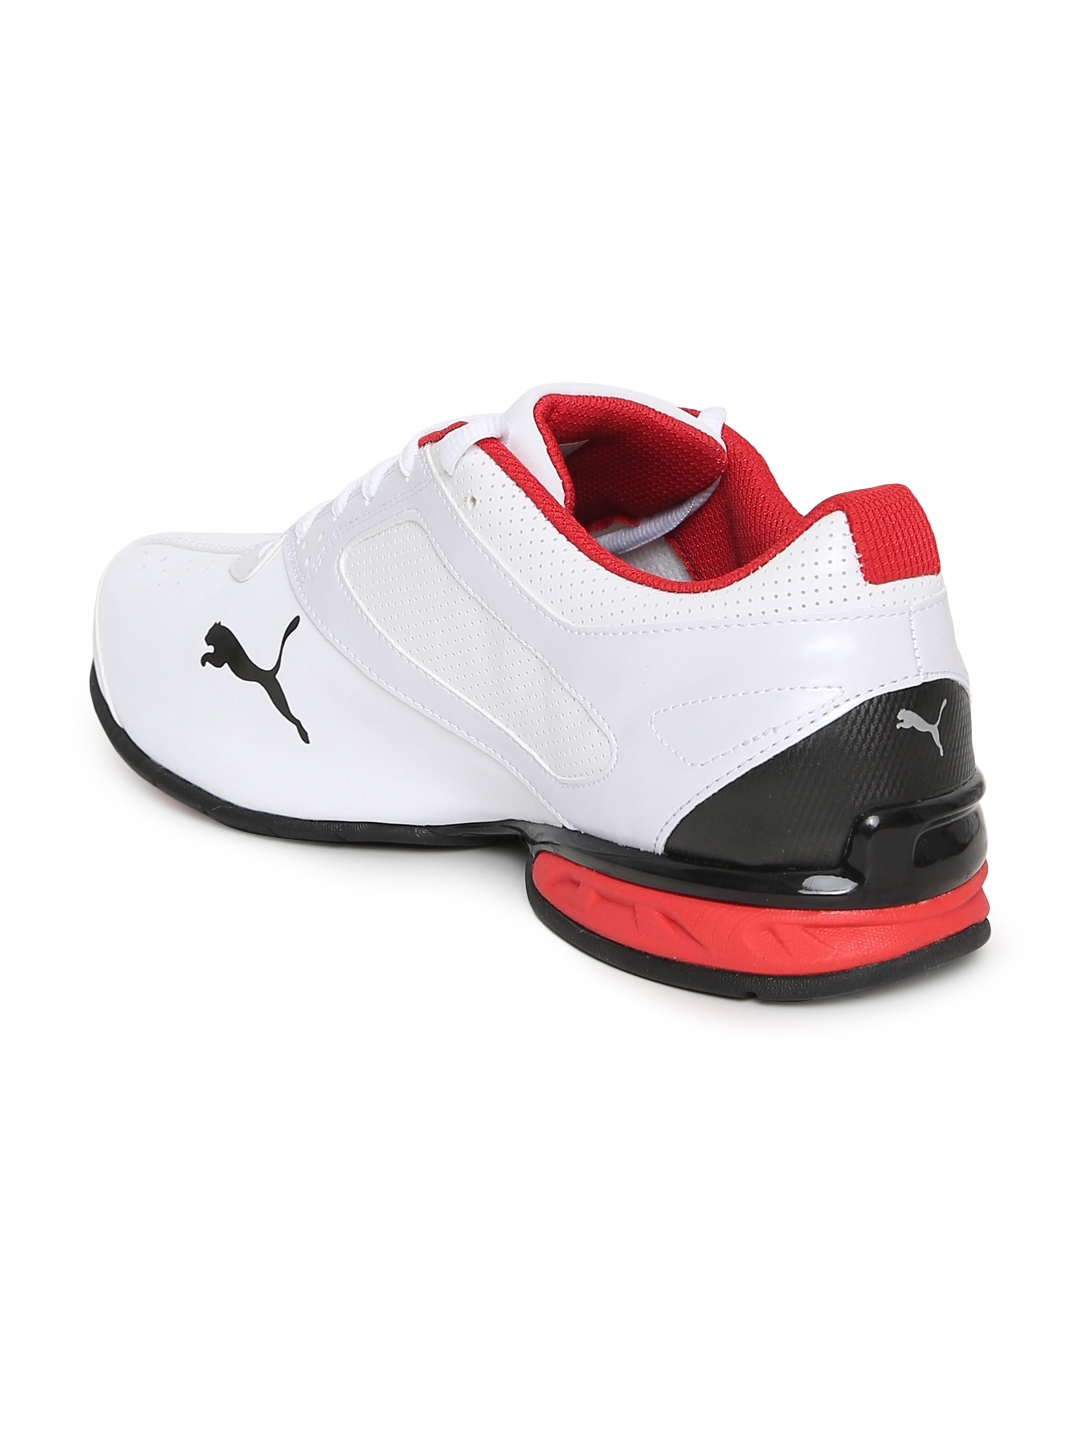 Buy Puma Men White Tazon 6 FM Sports Running Shoes - Sports Shoes ... 25bbdcad8